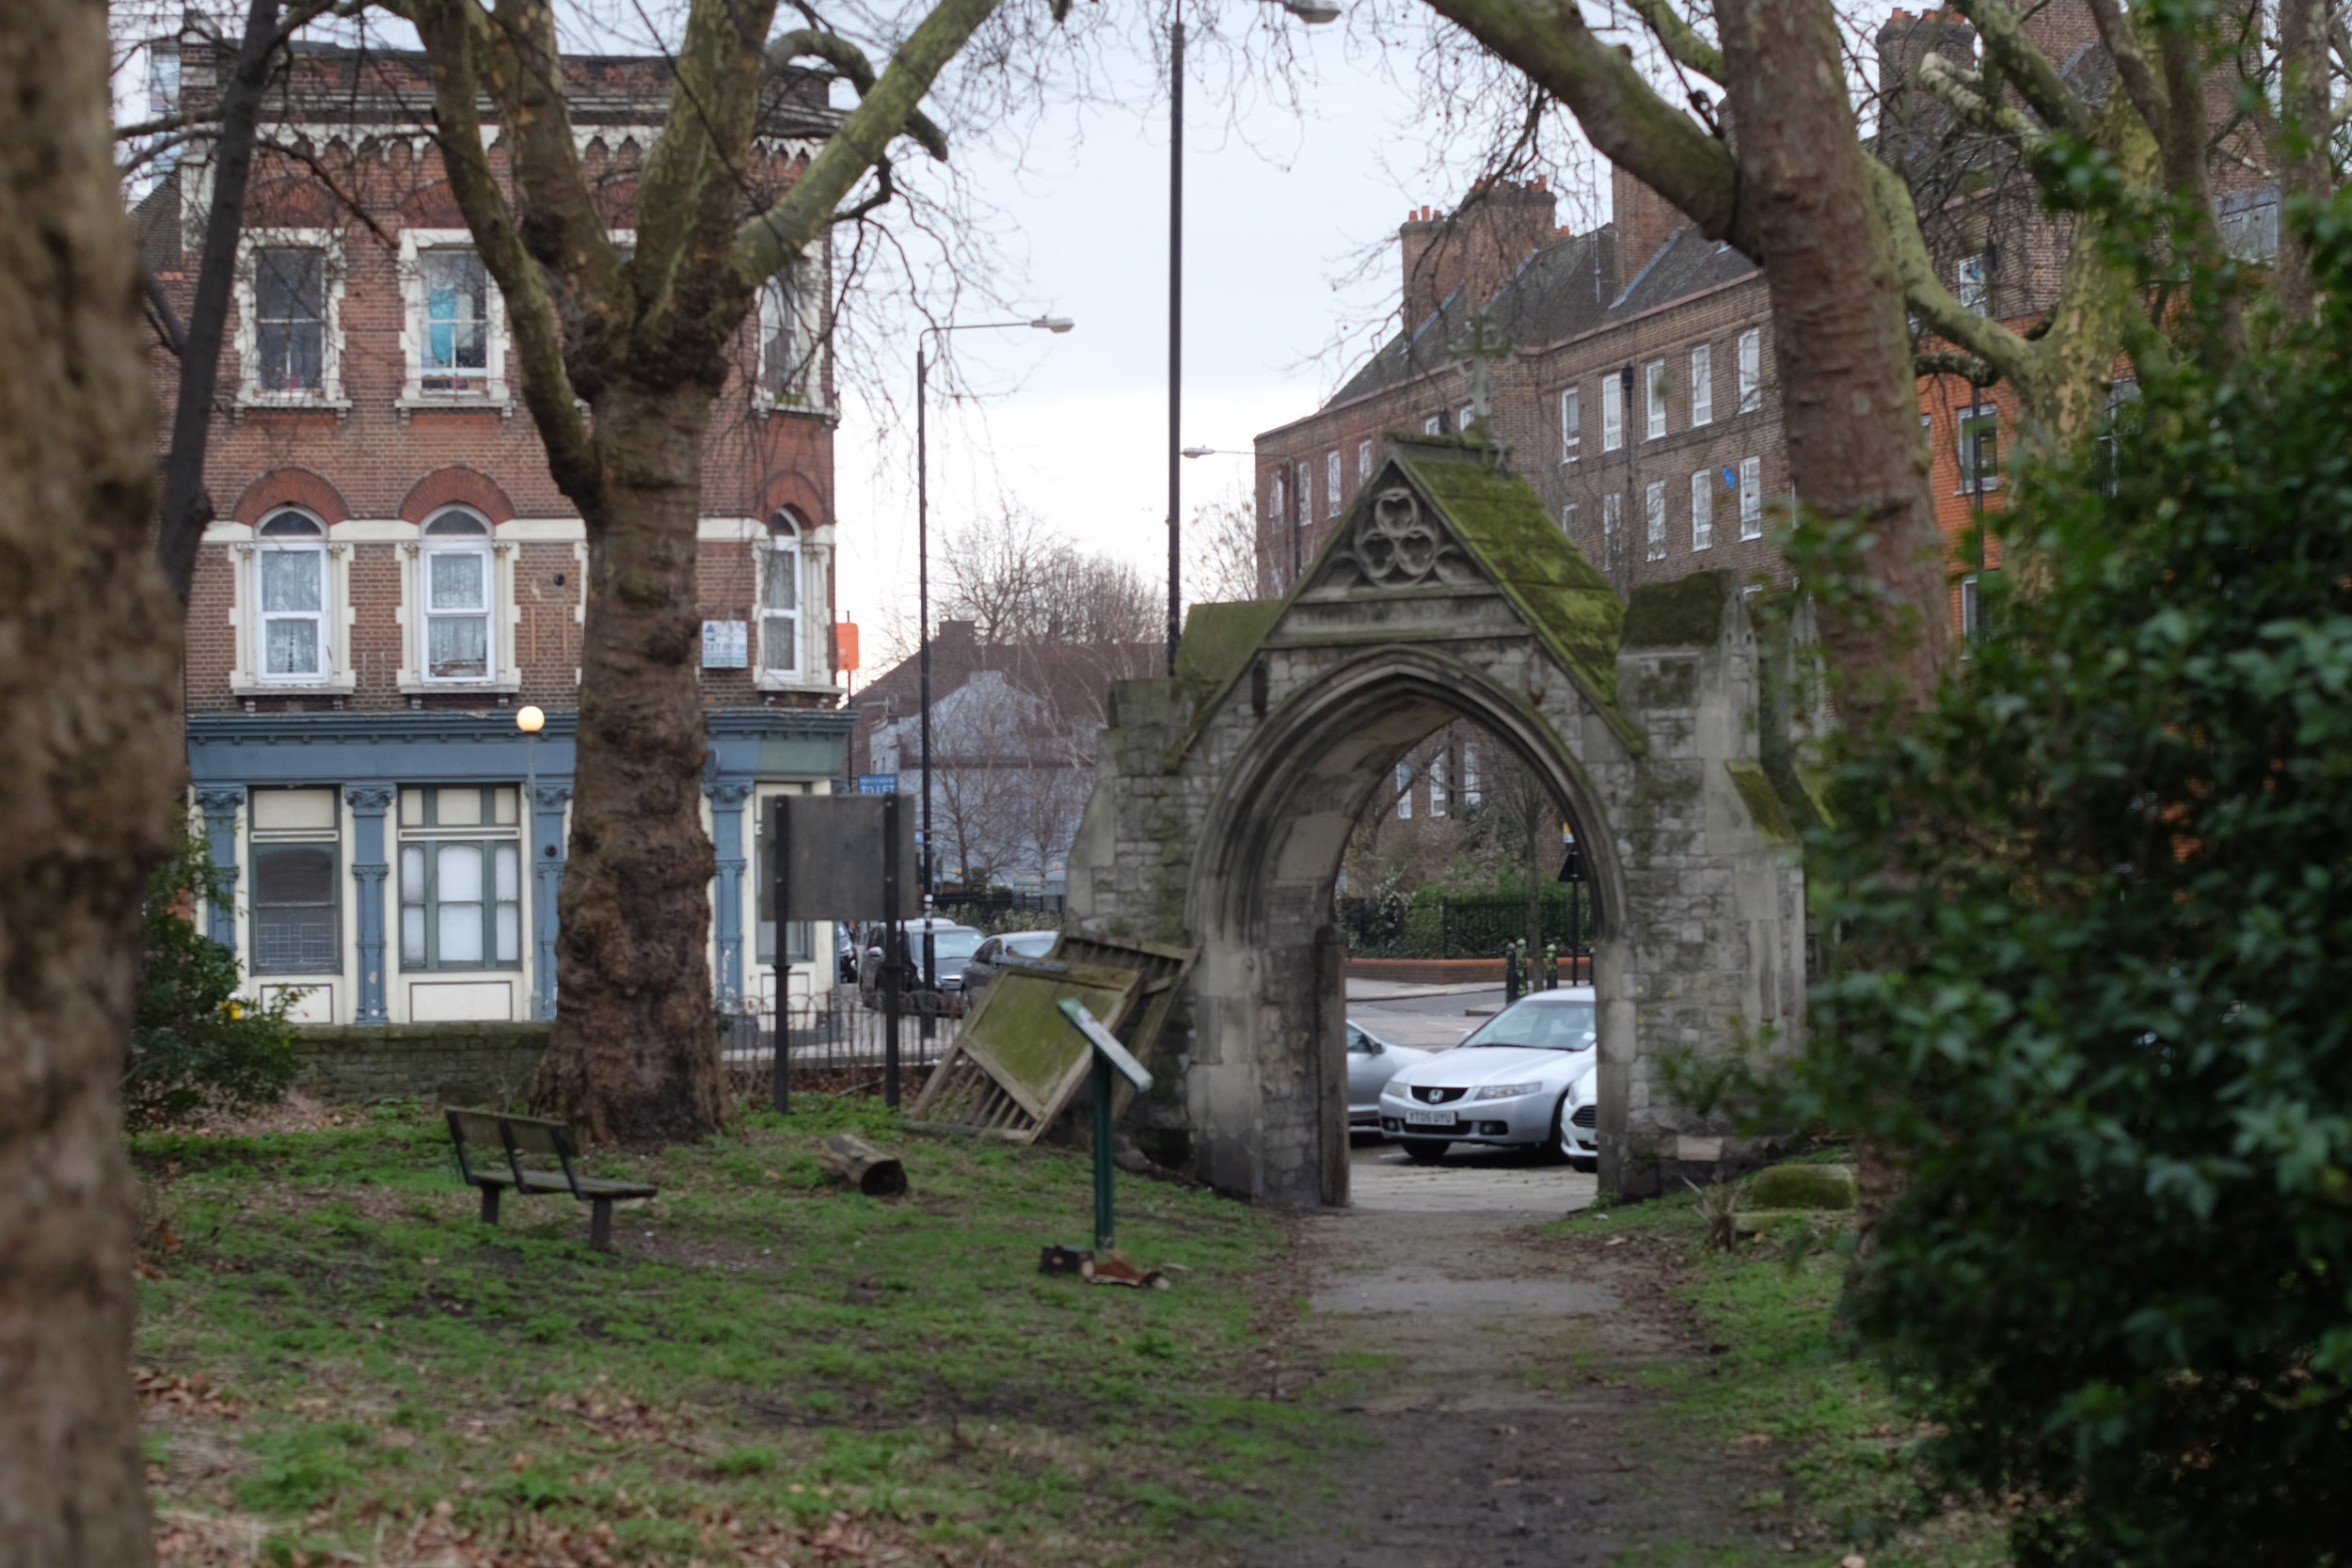 The priory entrance